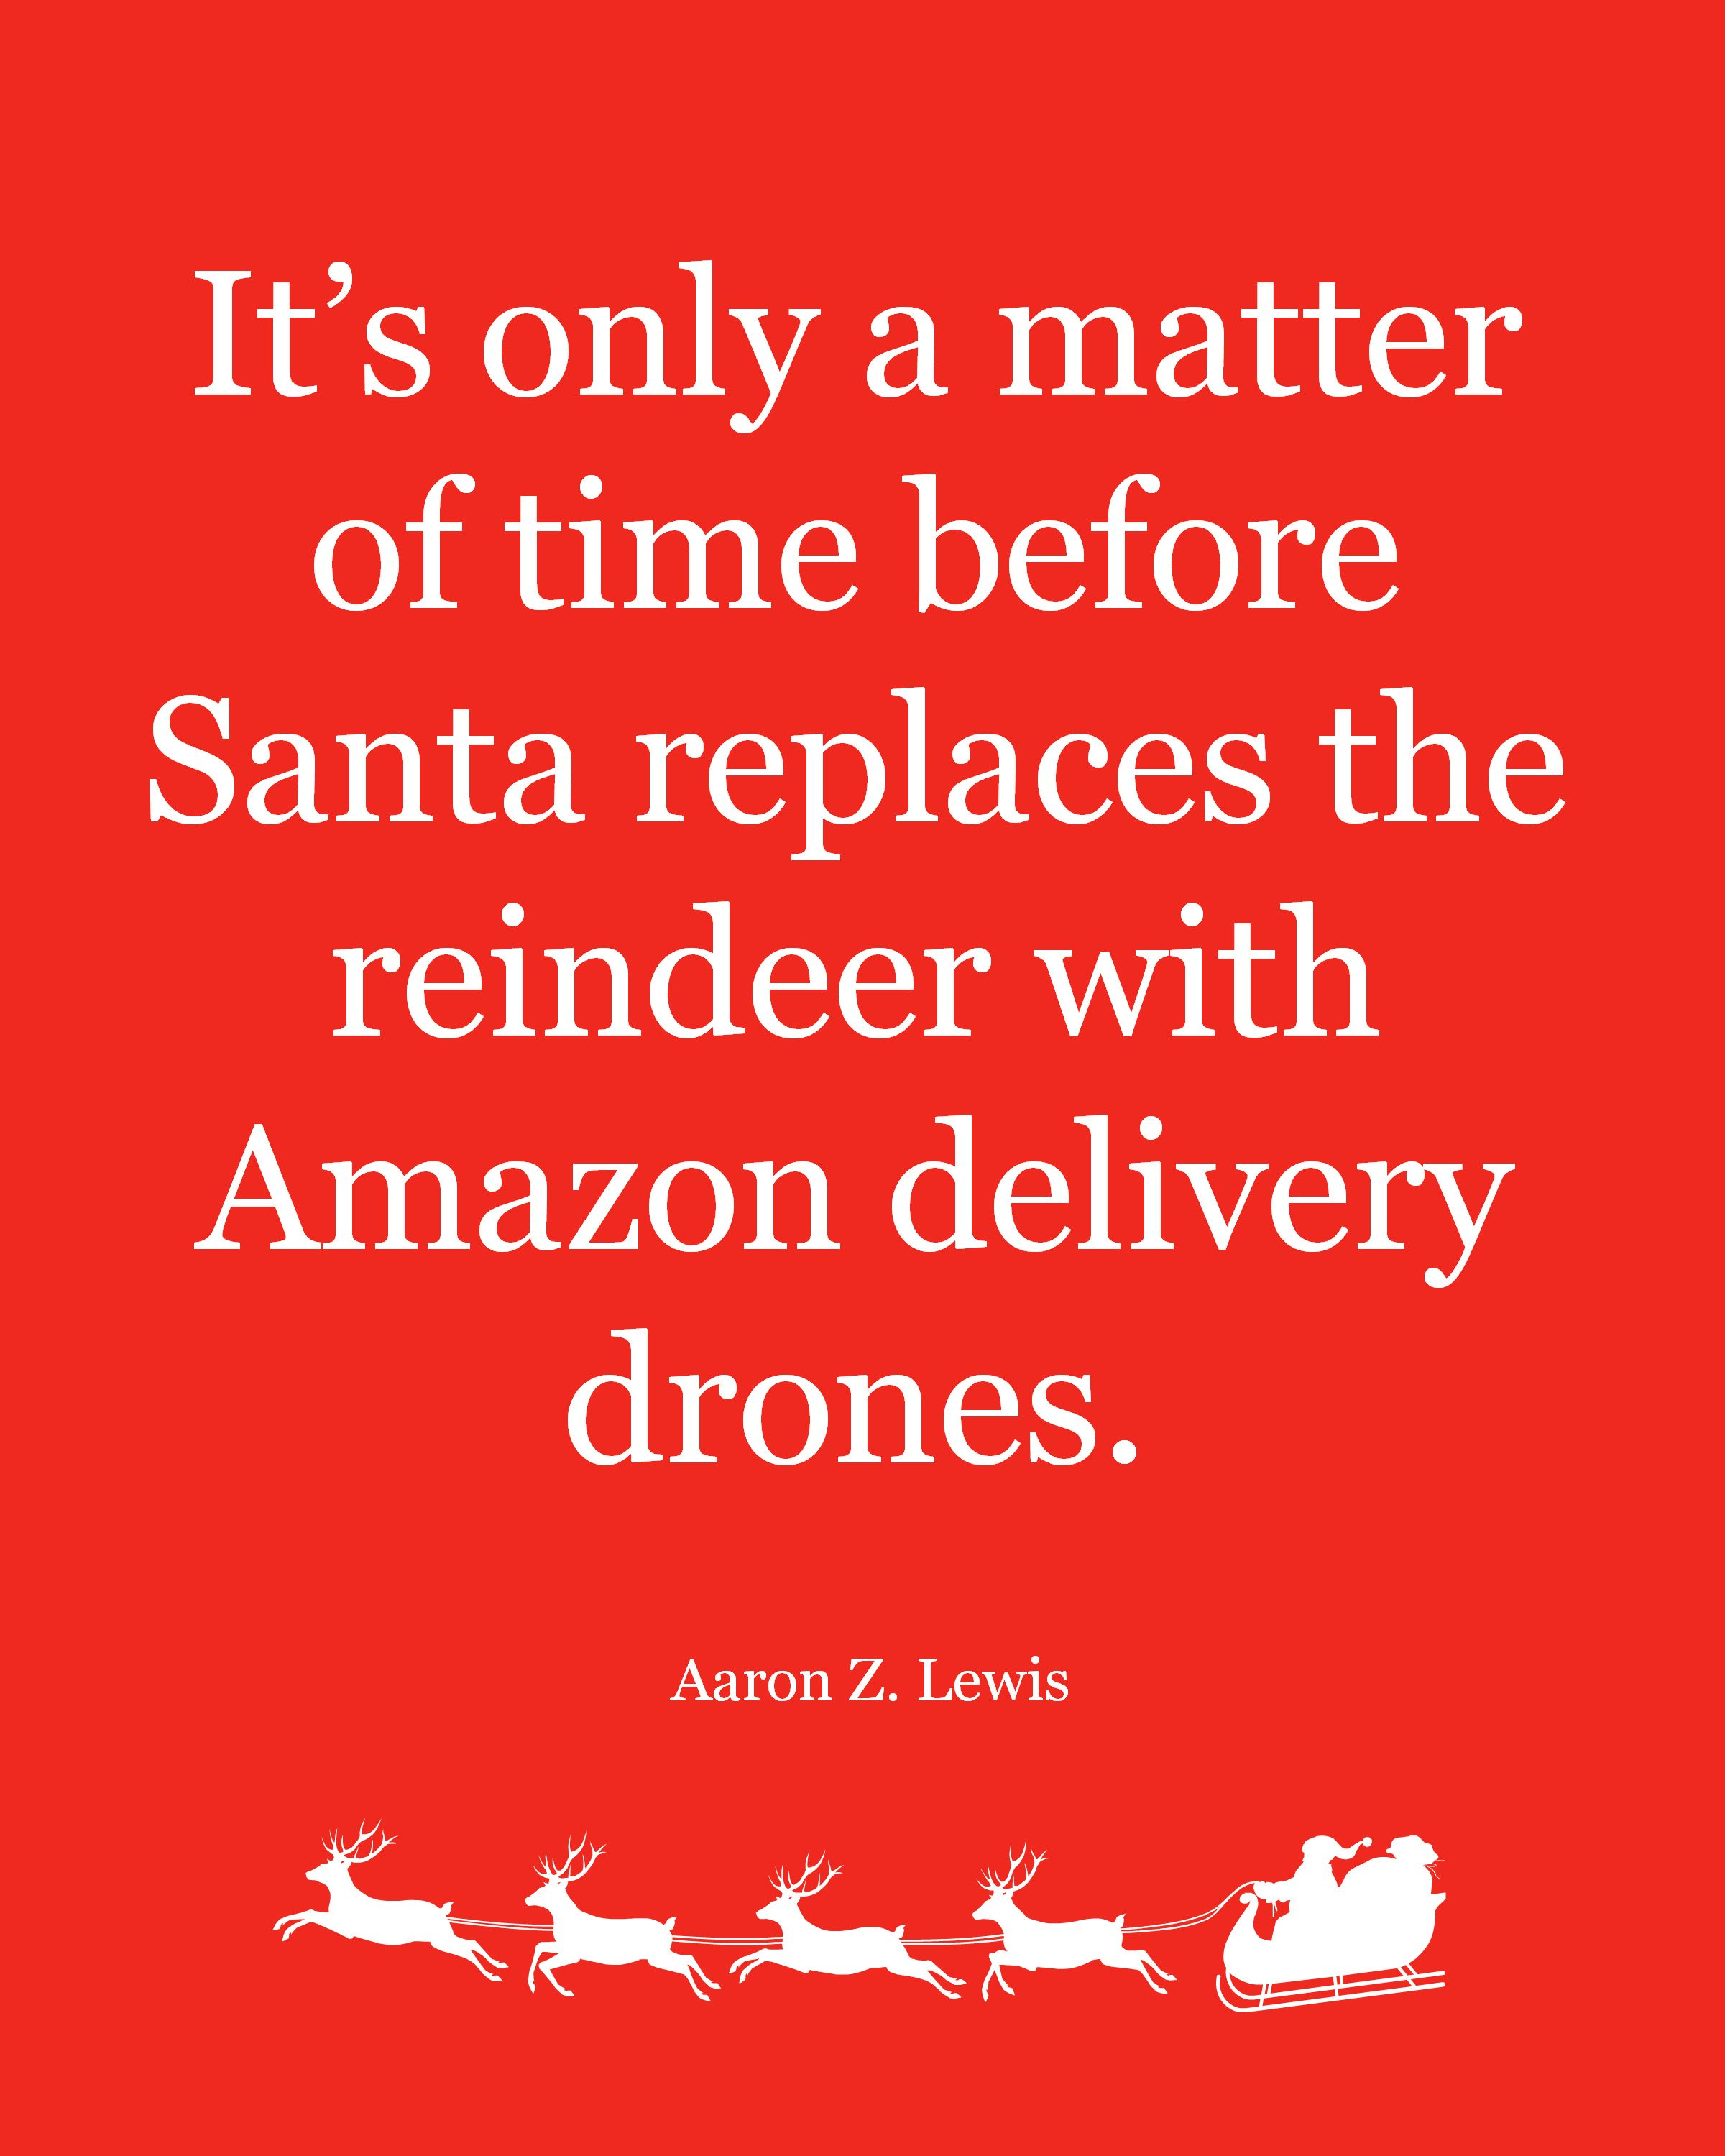 Quotes About Technology Quotes Technology Amazon Drones Reindeer Santa